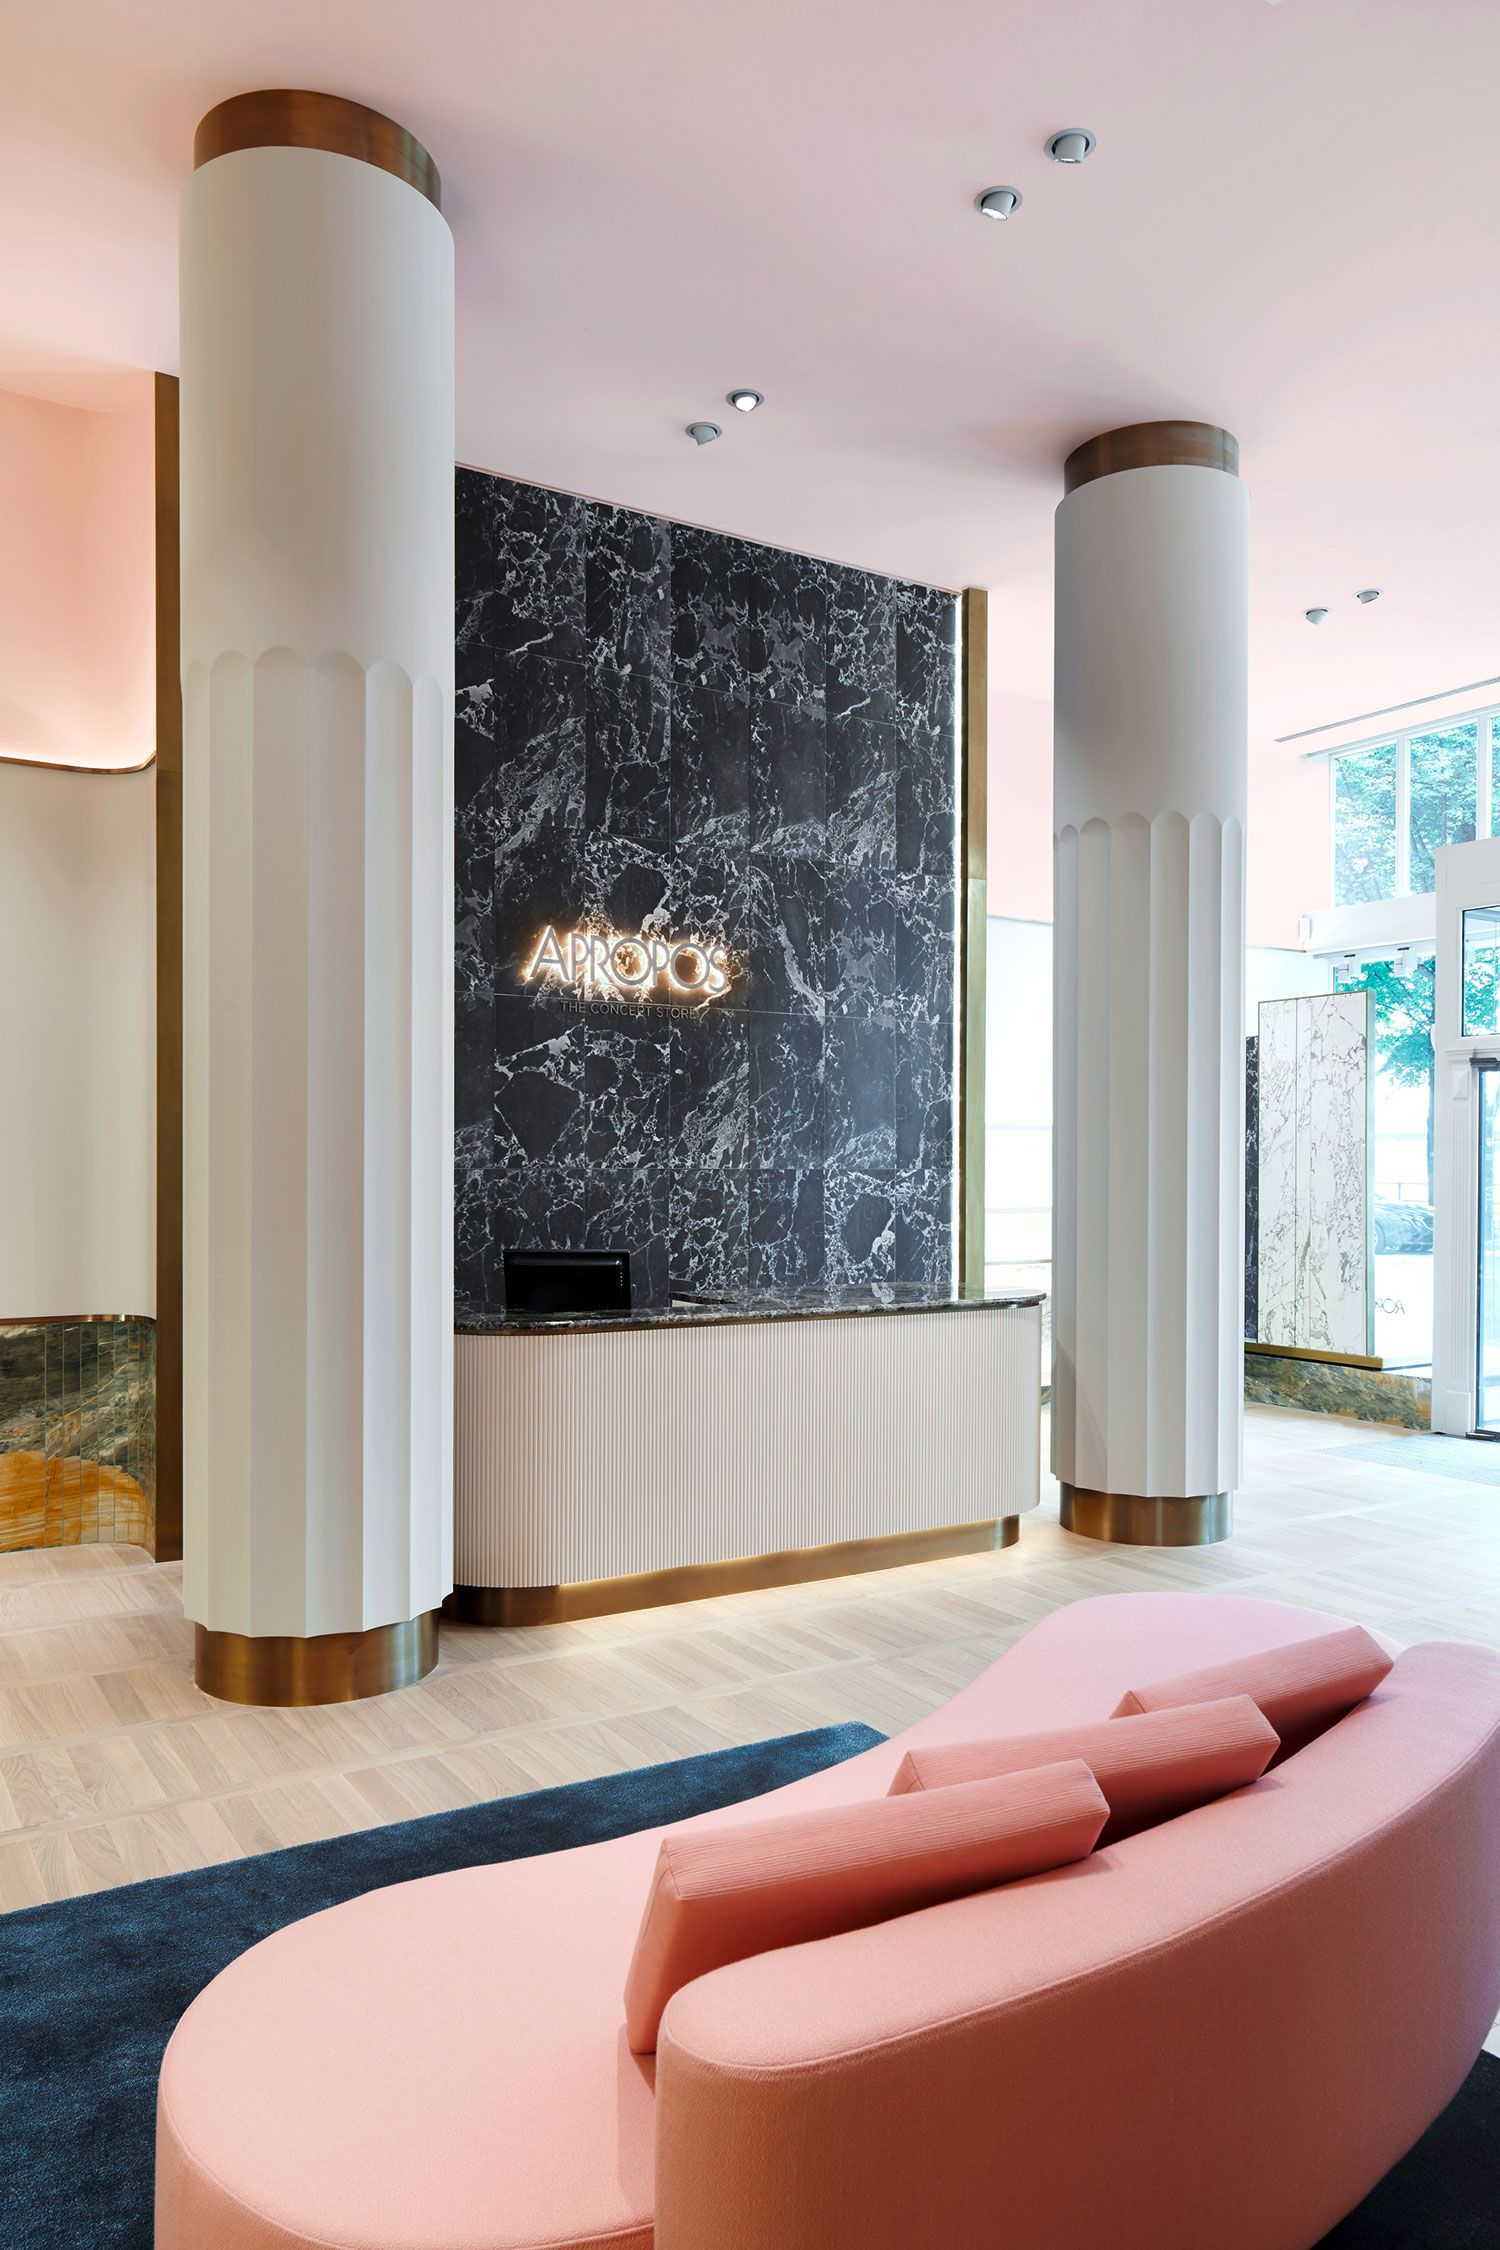 Apropos Concept Store In Hamburg By Rodolphe Parente Benjamin Liatoud Yelllowtrace